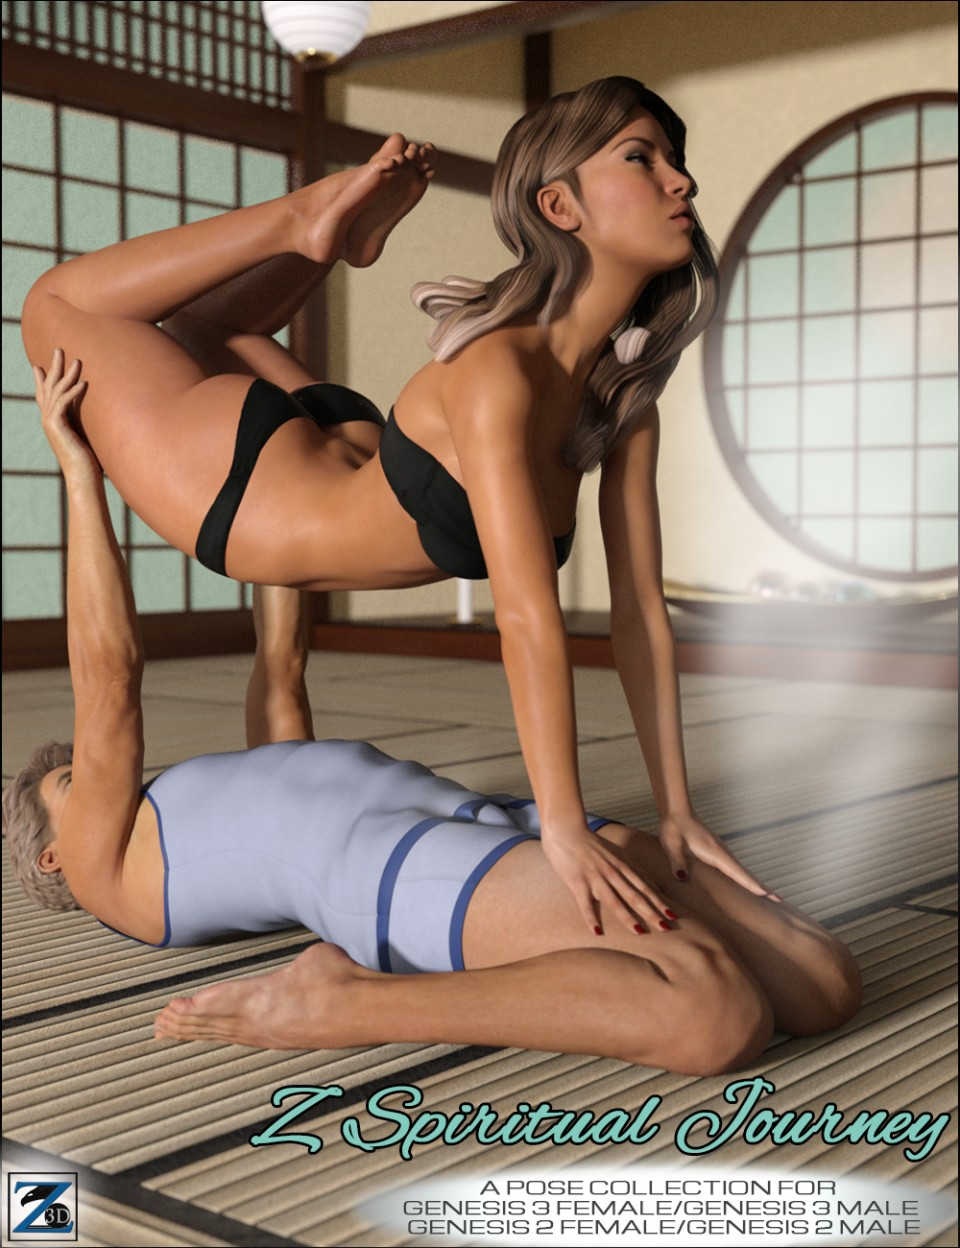 Z Spiritual Journey – Poses for Genesis 2 & 3 Female and Male_DAZ3D下载站